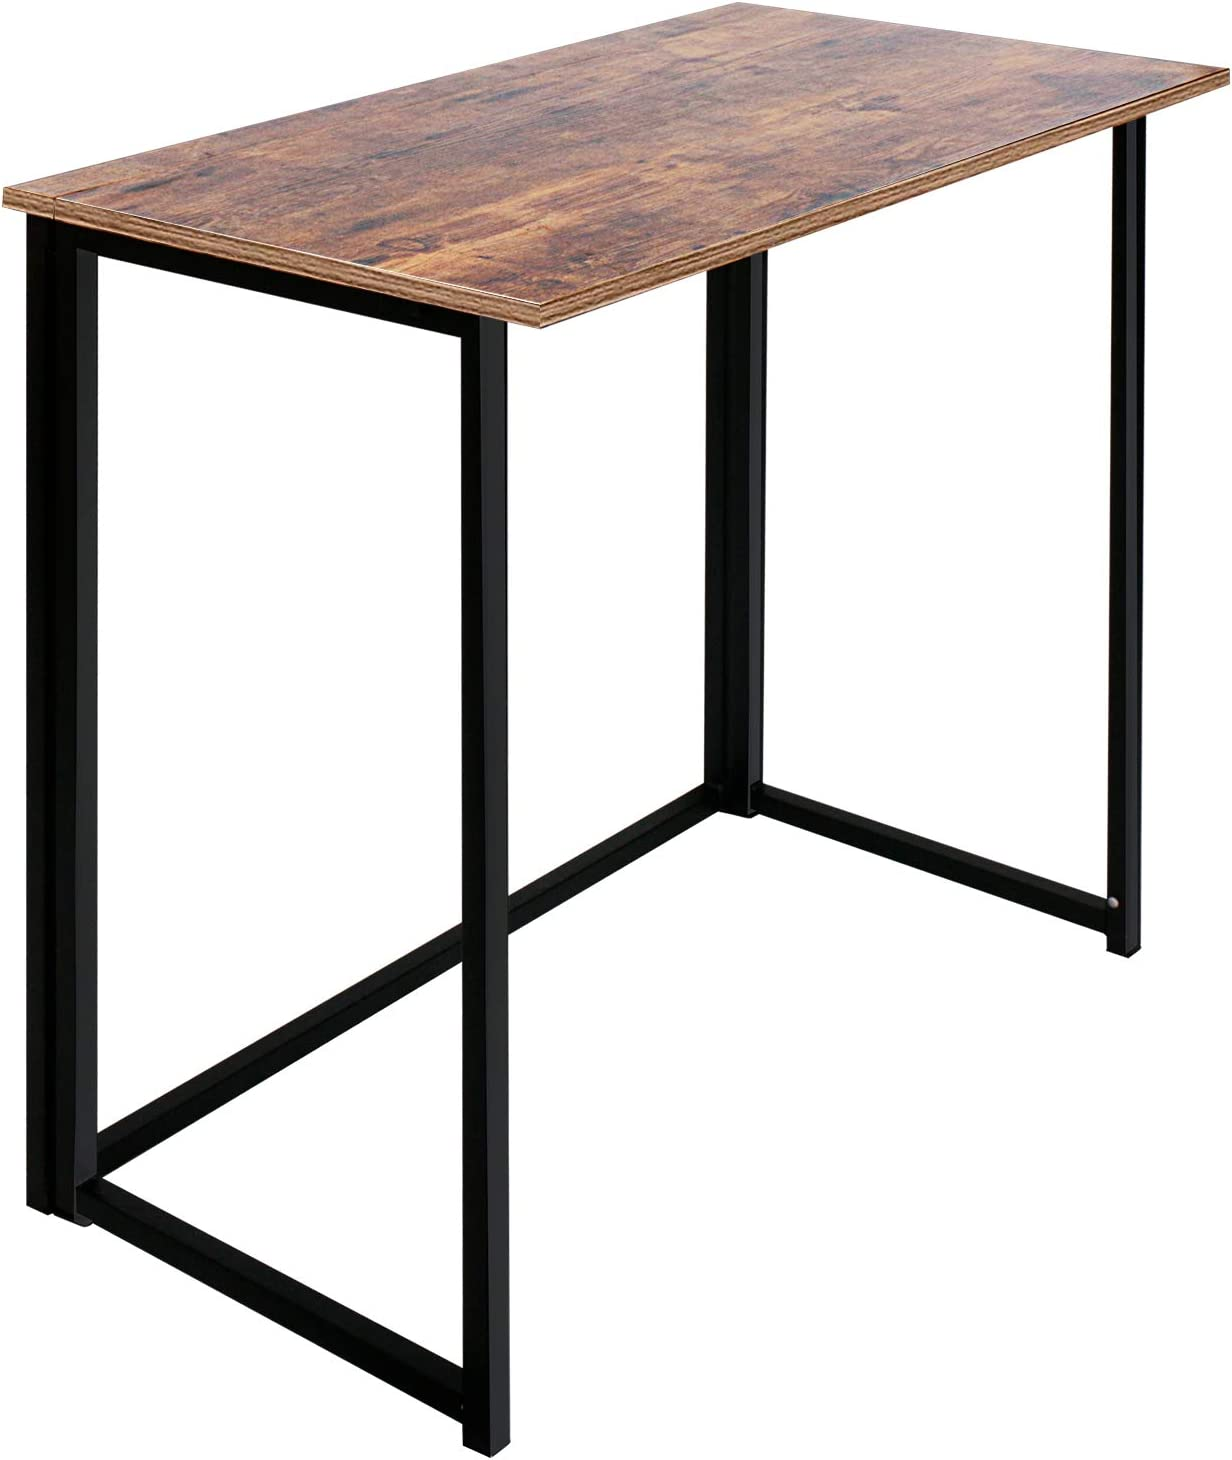 Folding Computer Desk for Small Spaces, Simple Space-Saving Home Office Desk, Foldable Computer Table, Laptop Table, Writing Desk, Compact Study Reading Table (Rustic Brown)